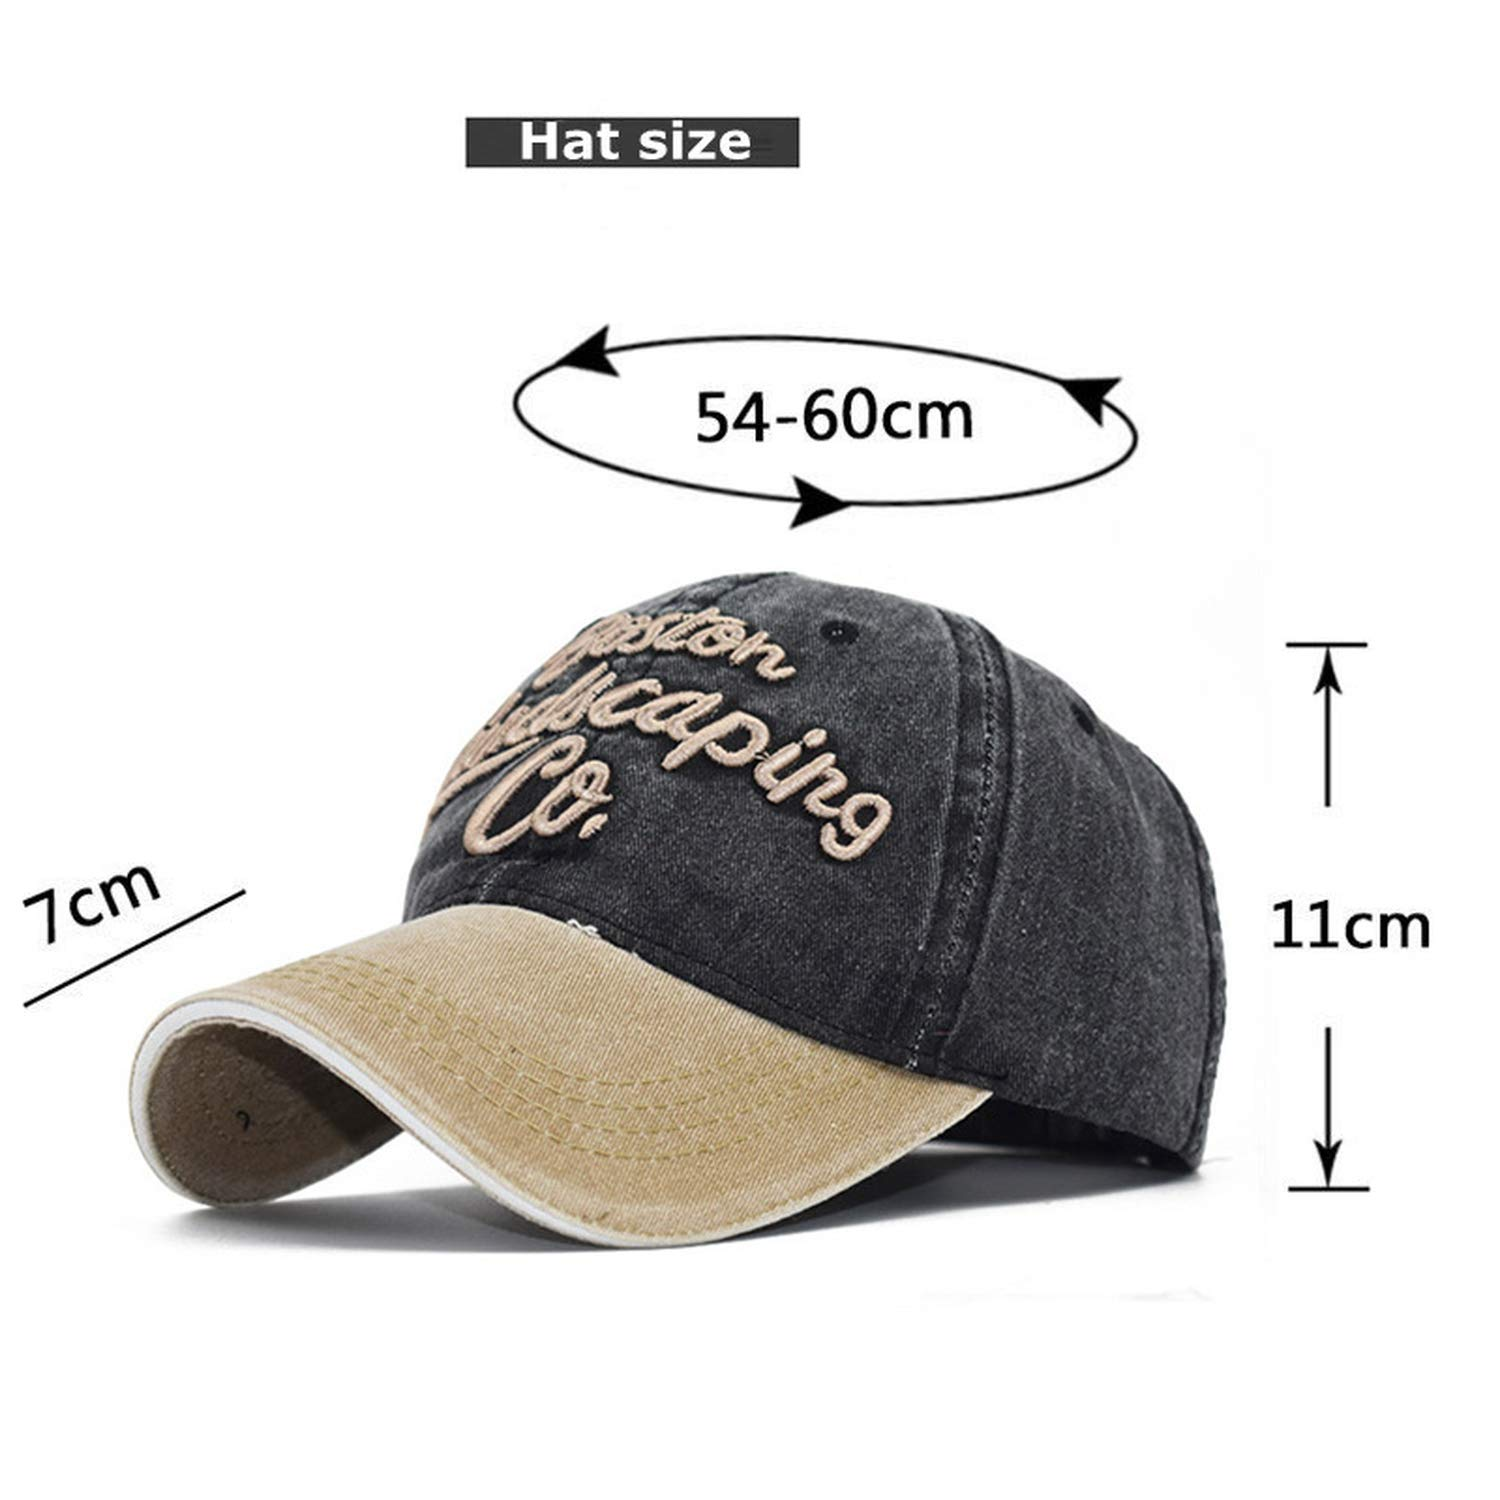 65710bf31e8 2019 New Men and Women Caps Dad Hat Baseball Cap Spring and Summer Cotton Hip  Hop Embroidery Visor Sun Hat Black at Amazon Men s Clothing store